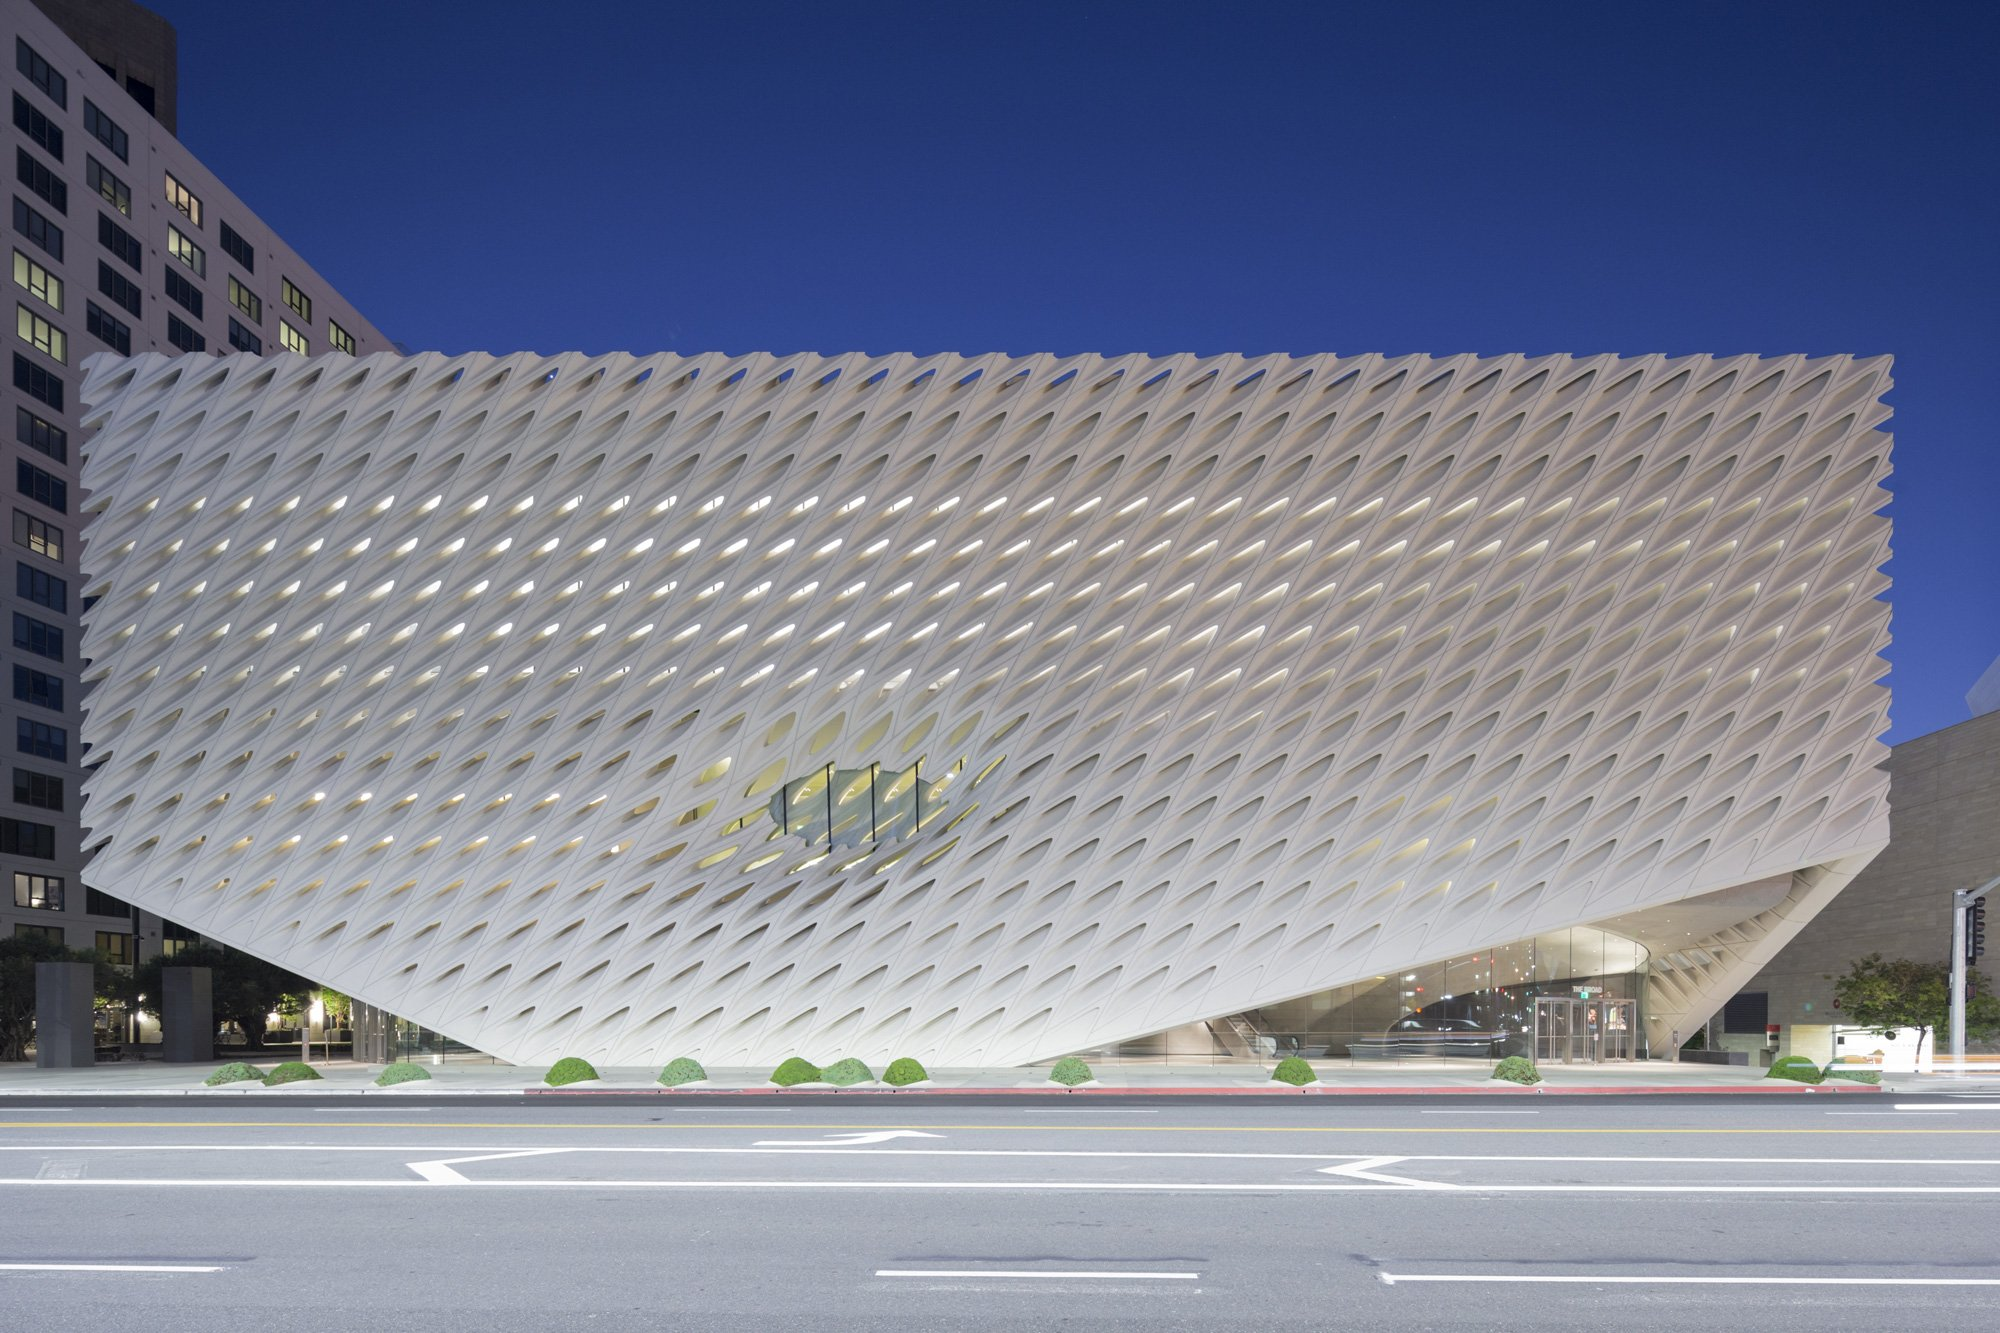 Contemporary Art Museum The Broad © Iwan Baan, courtesy of The Broad and Diller Scofidio + Renfro